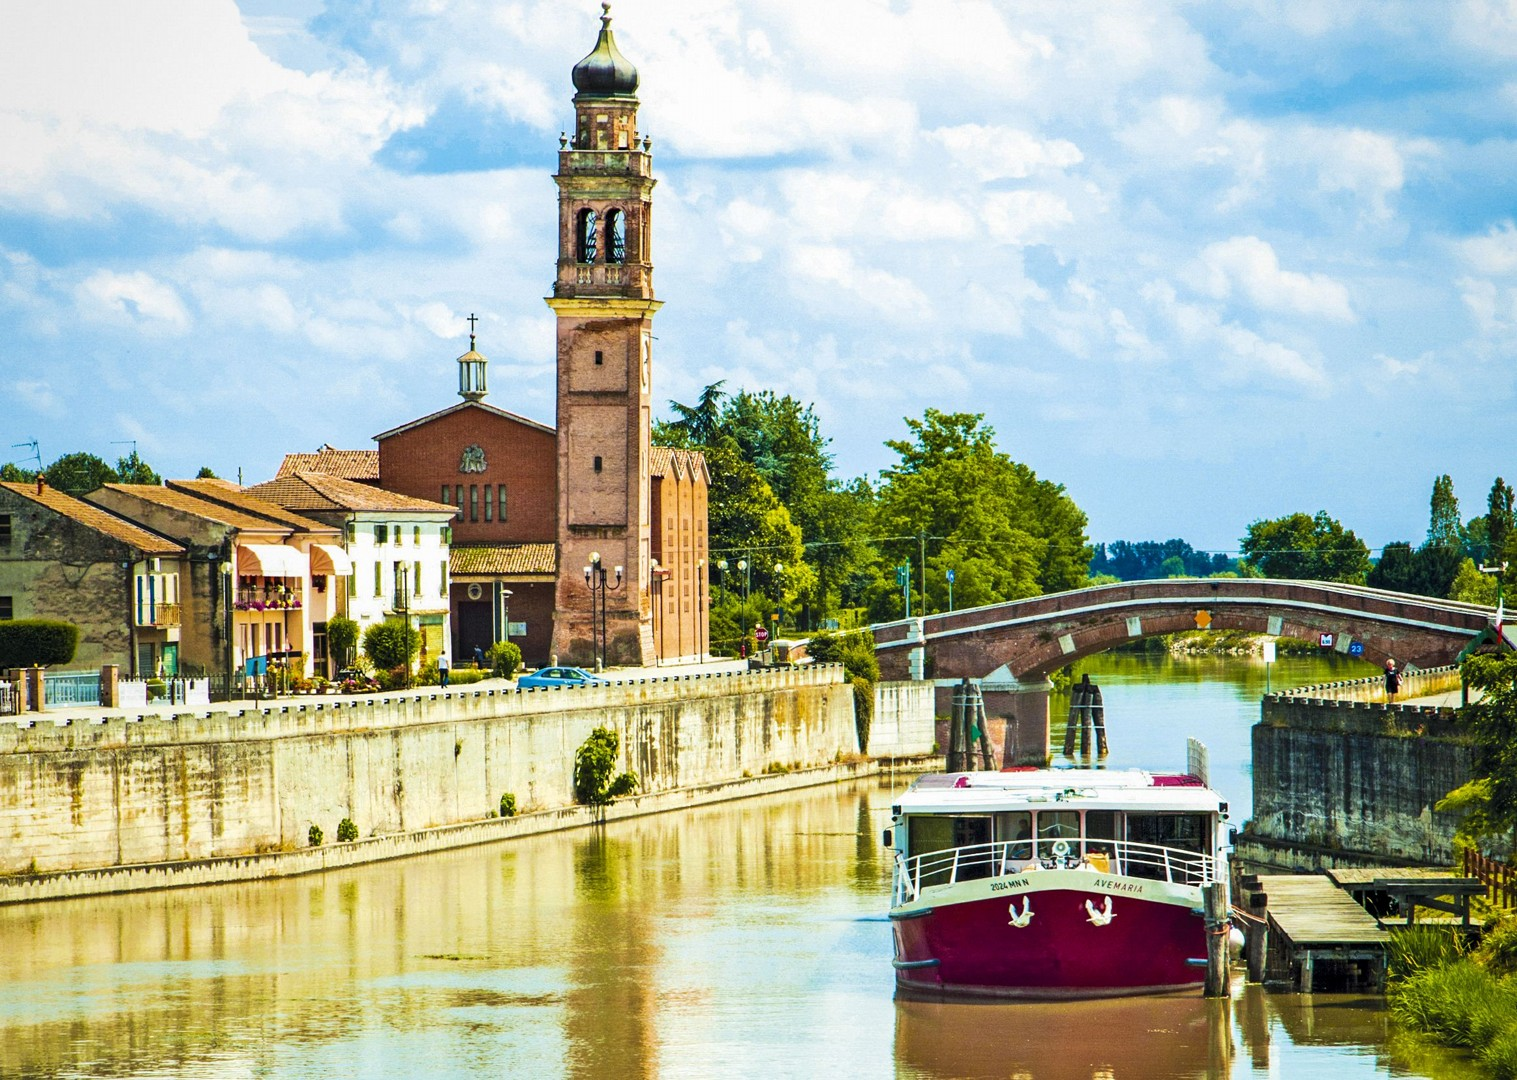 ave-maria-bike-and-boat-tour-modern-bright-accommodation-saddle-skedaddle.jpg - Italy - Venetian Waterways (Mantova to Venice) - Bike and Barge Holiday - Leisure Cycling